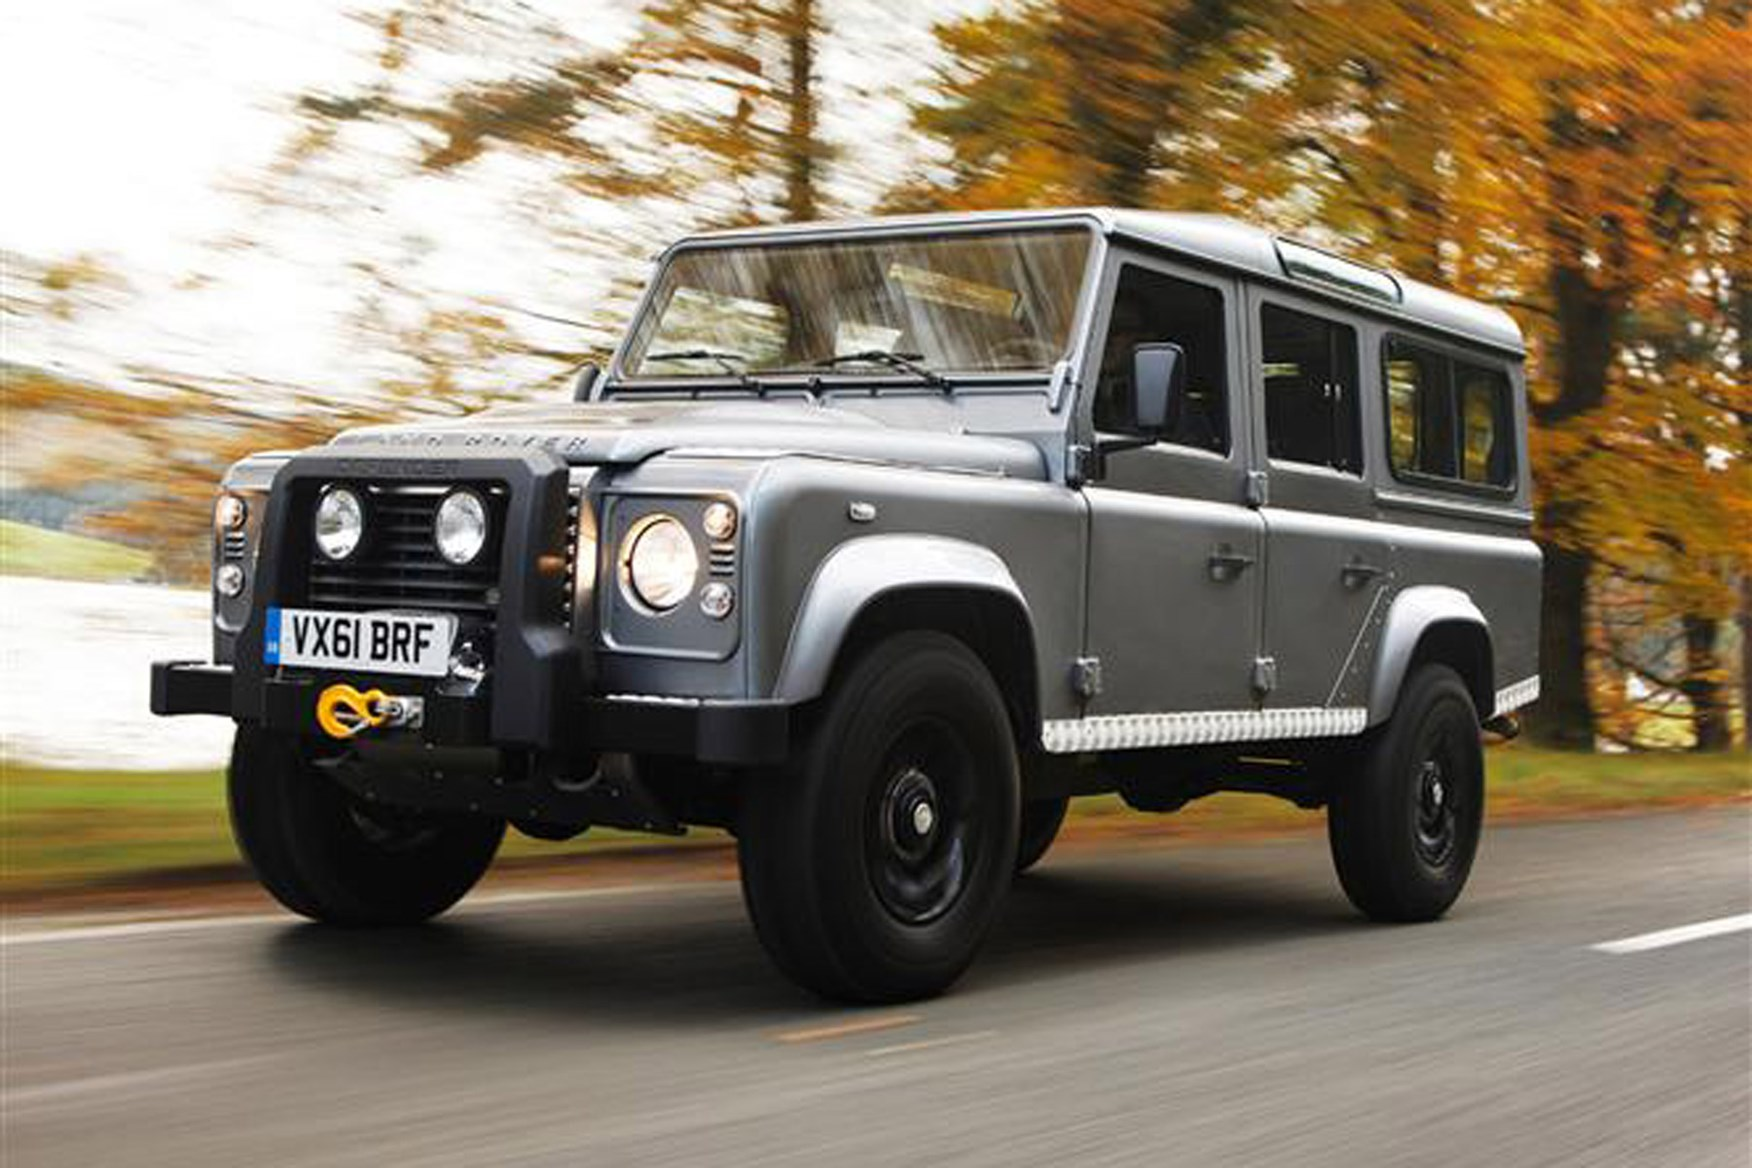 Land Rover Defender 2007-2016 review on Parkers Vans - 110 exterior